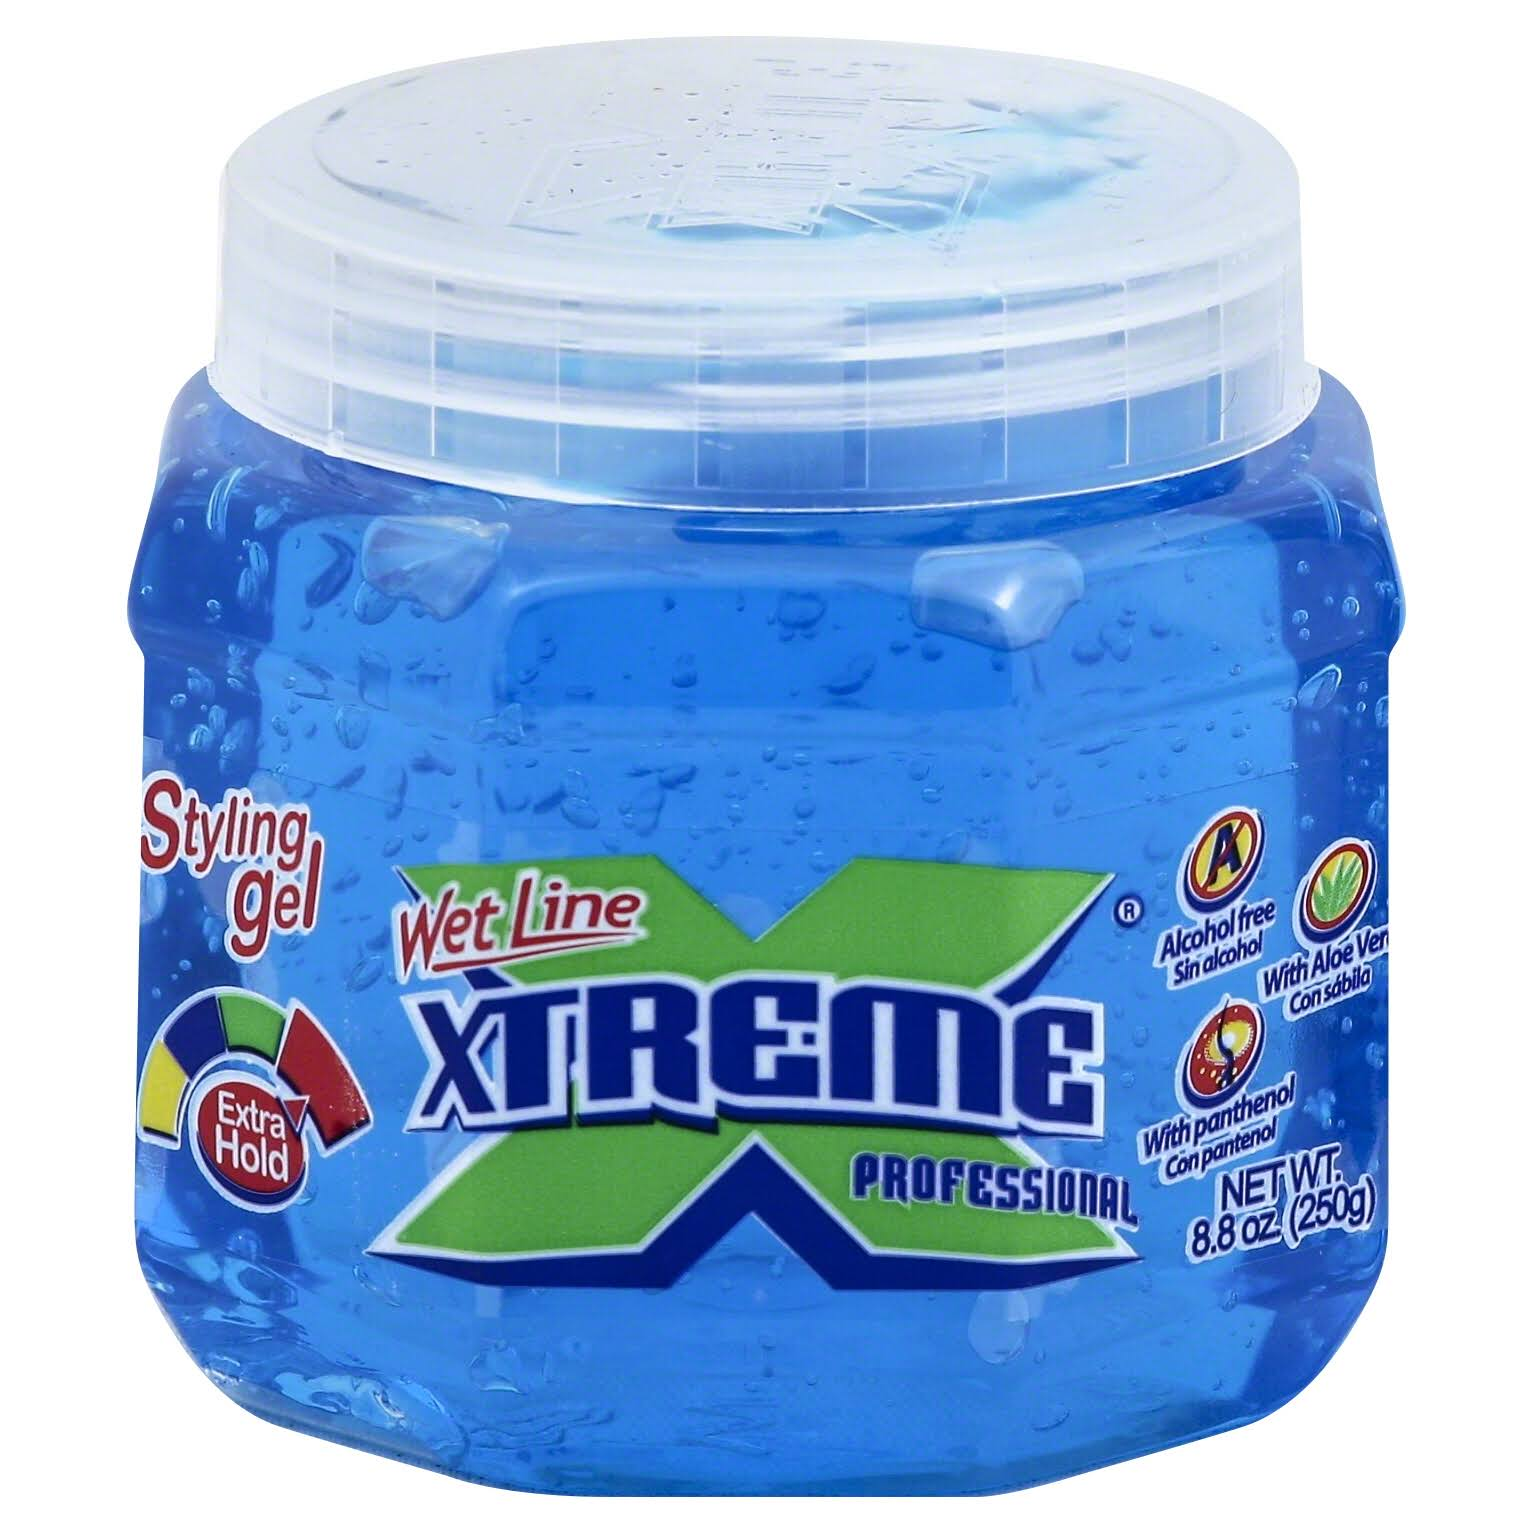 Wet Line Xtreme Professional Extra Hold Styling Gel - Blue